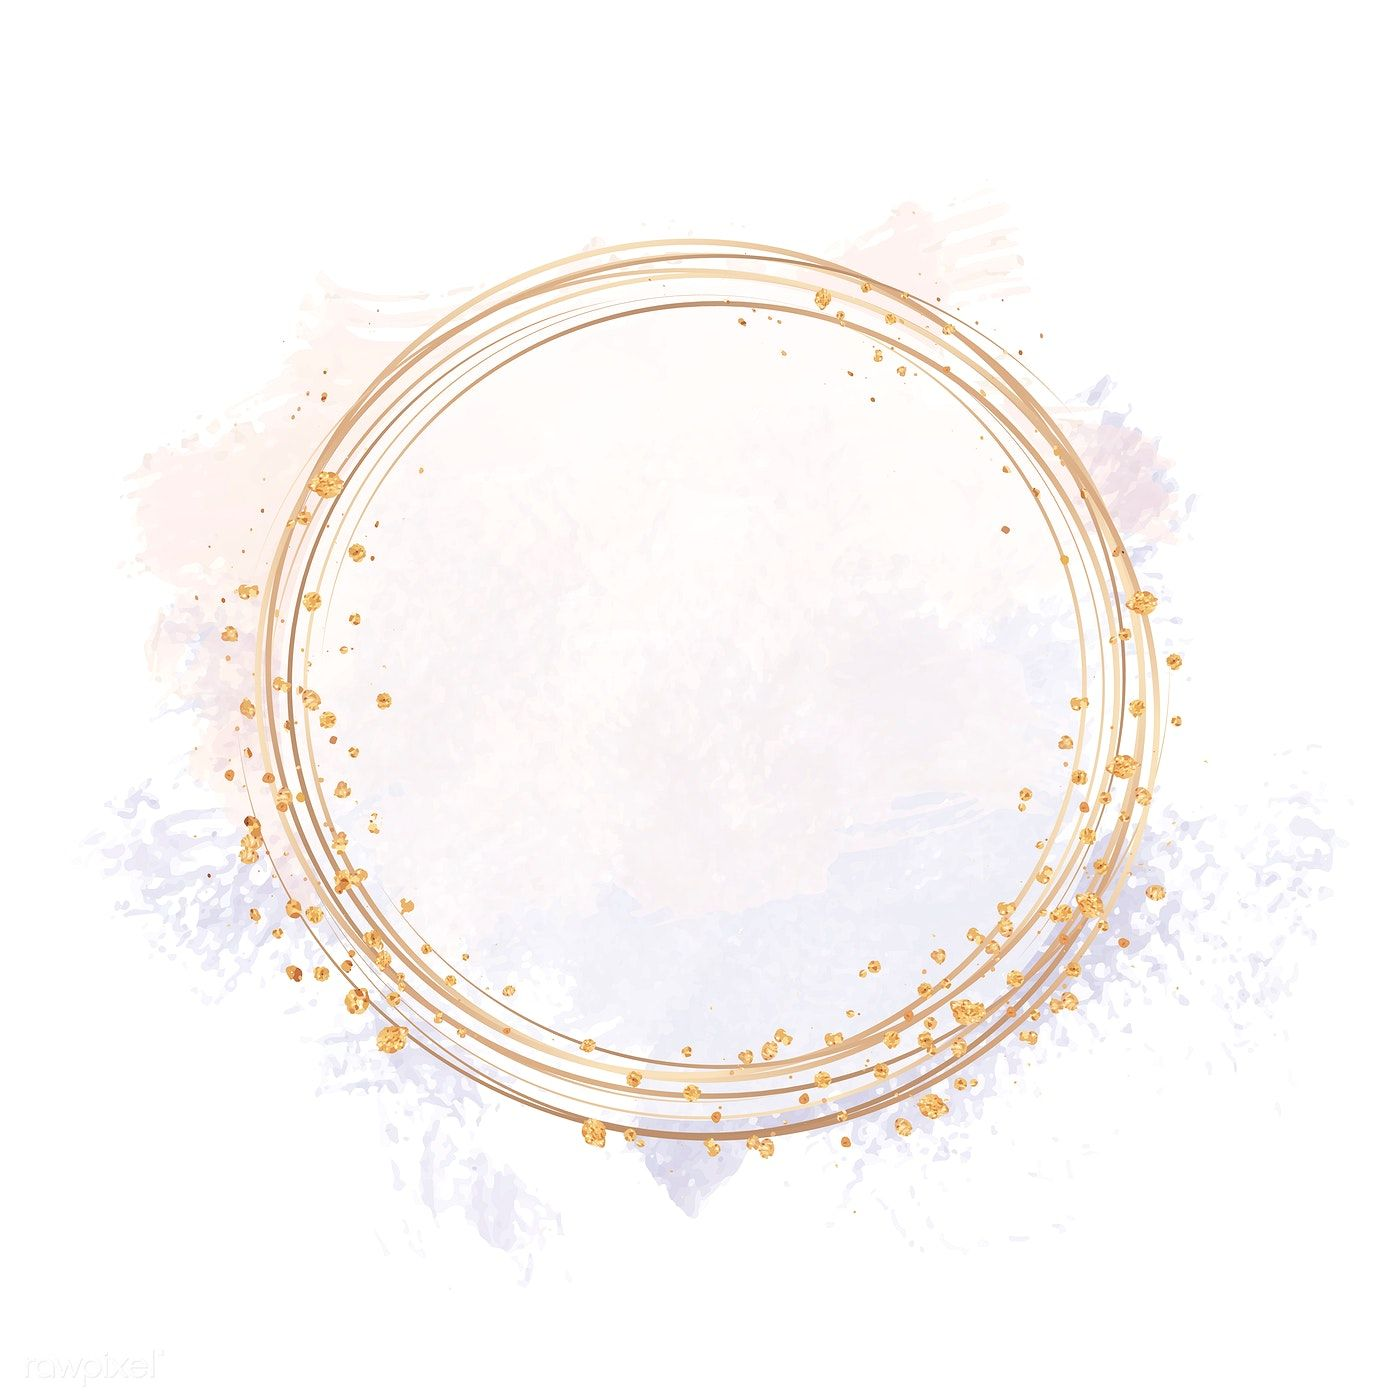 Gold circle frame on a pastel pink and purple background